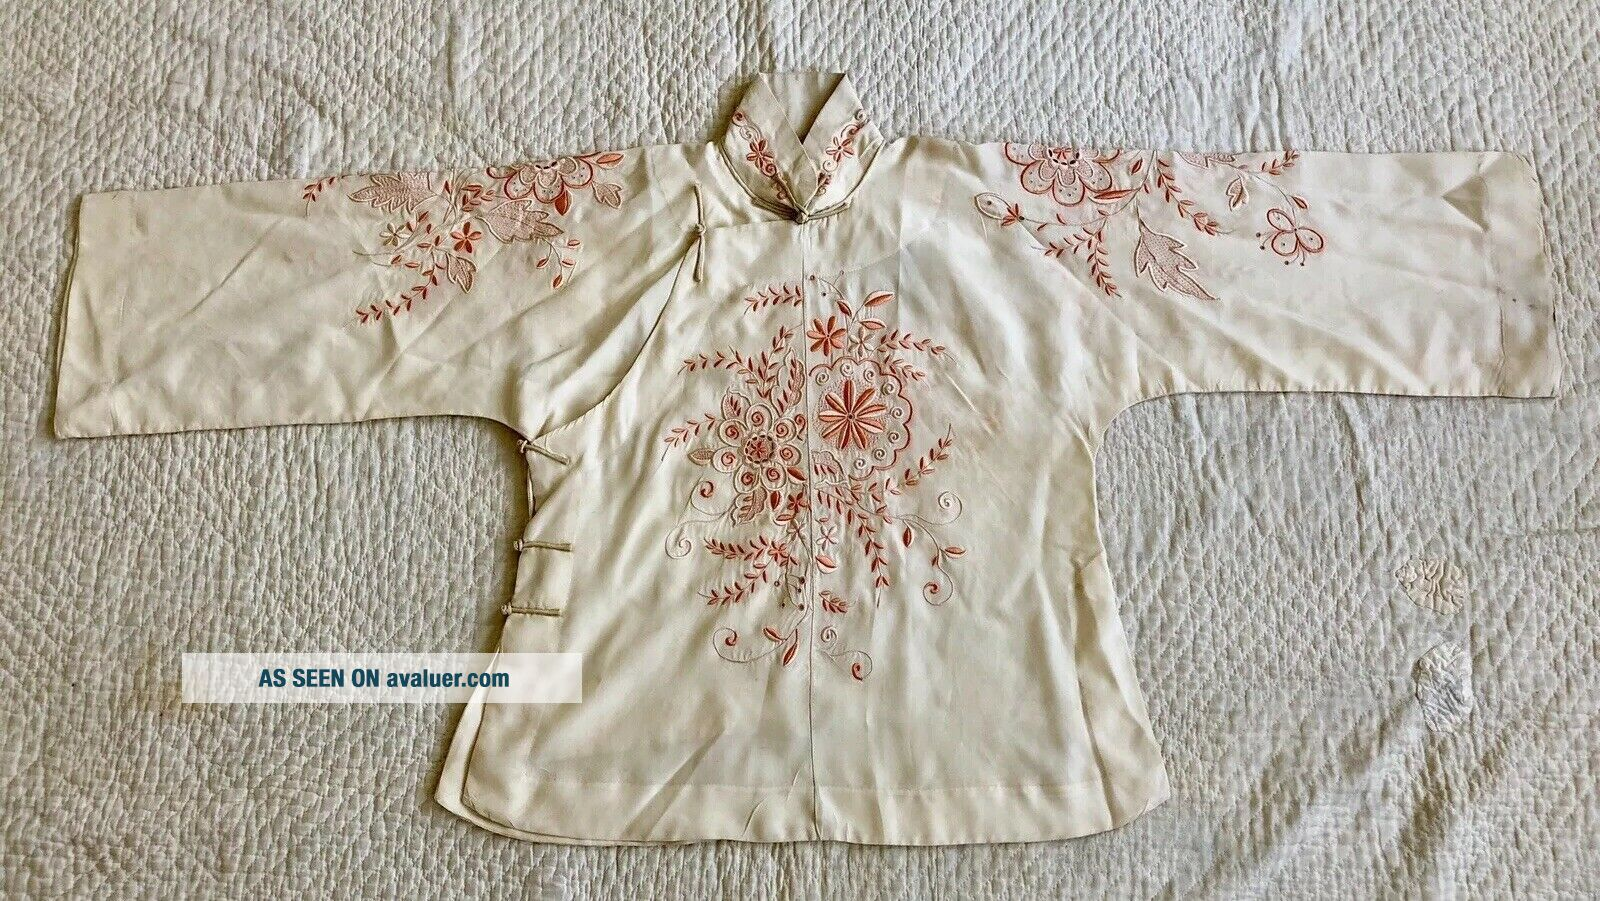 Vintage 1920s 30s Chinese Silk Cheongsam Qipao Top Blouse Floral Embroidery VTG